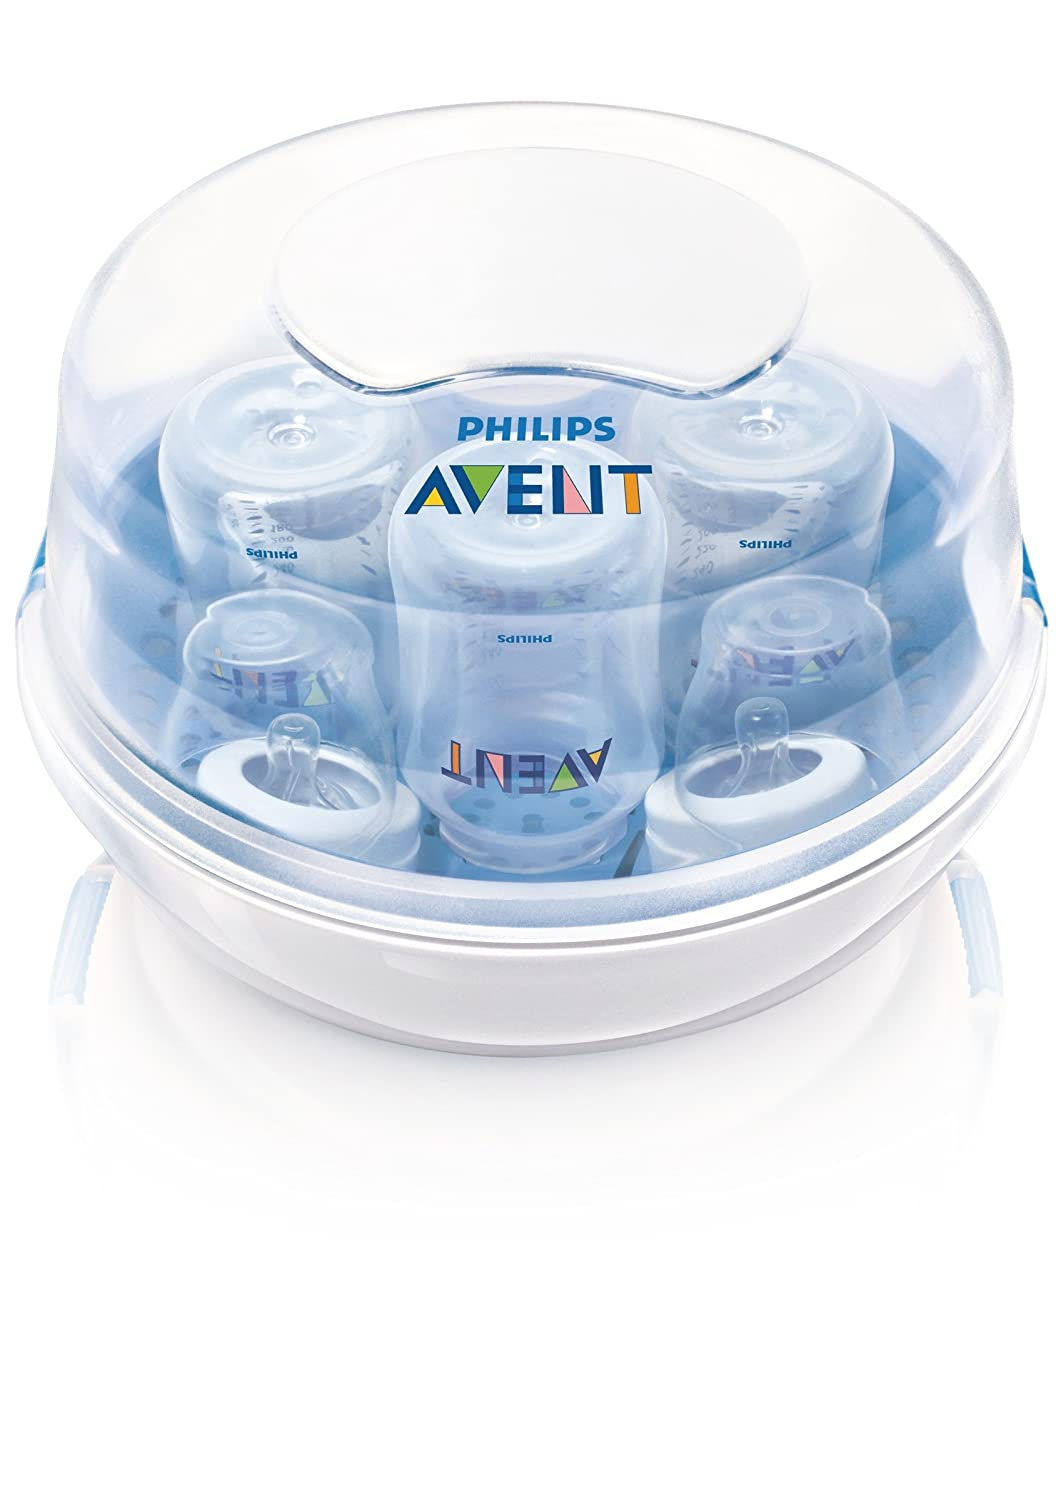 Philips Avent Steam Sterilizer...